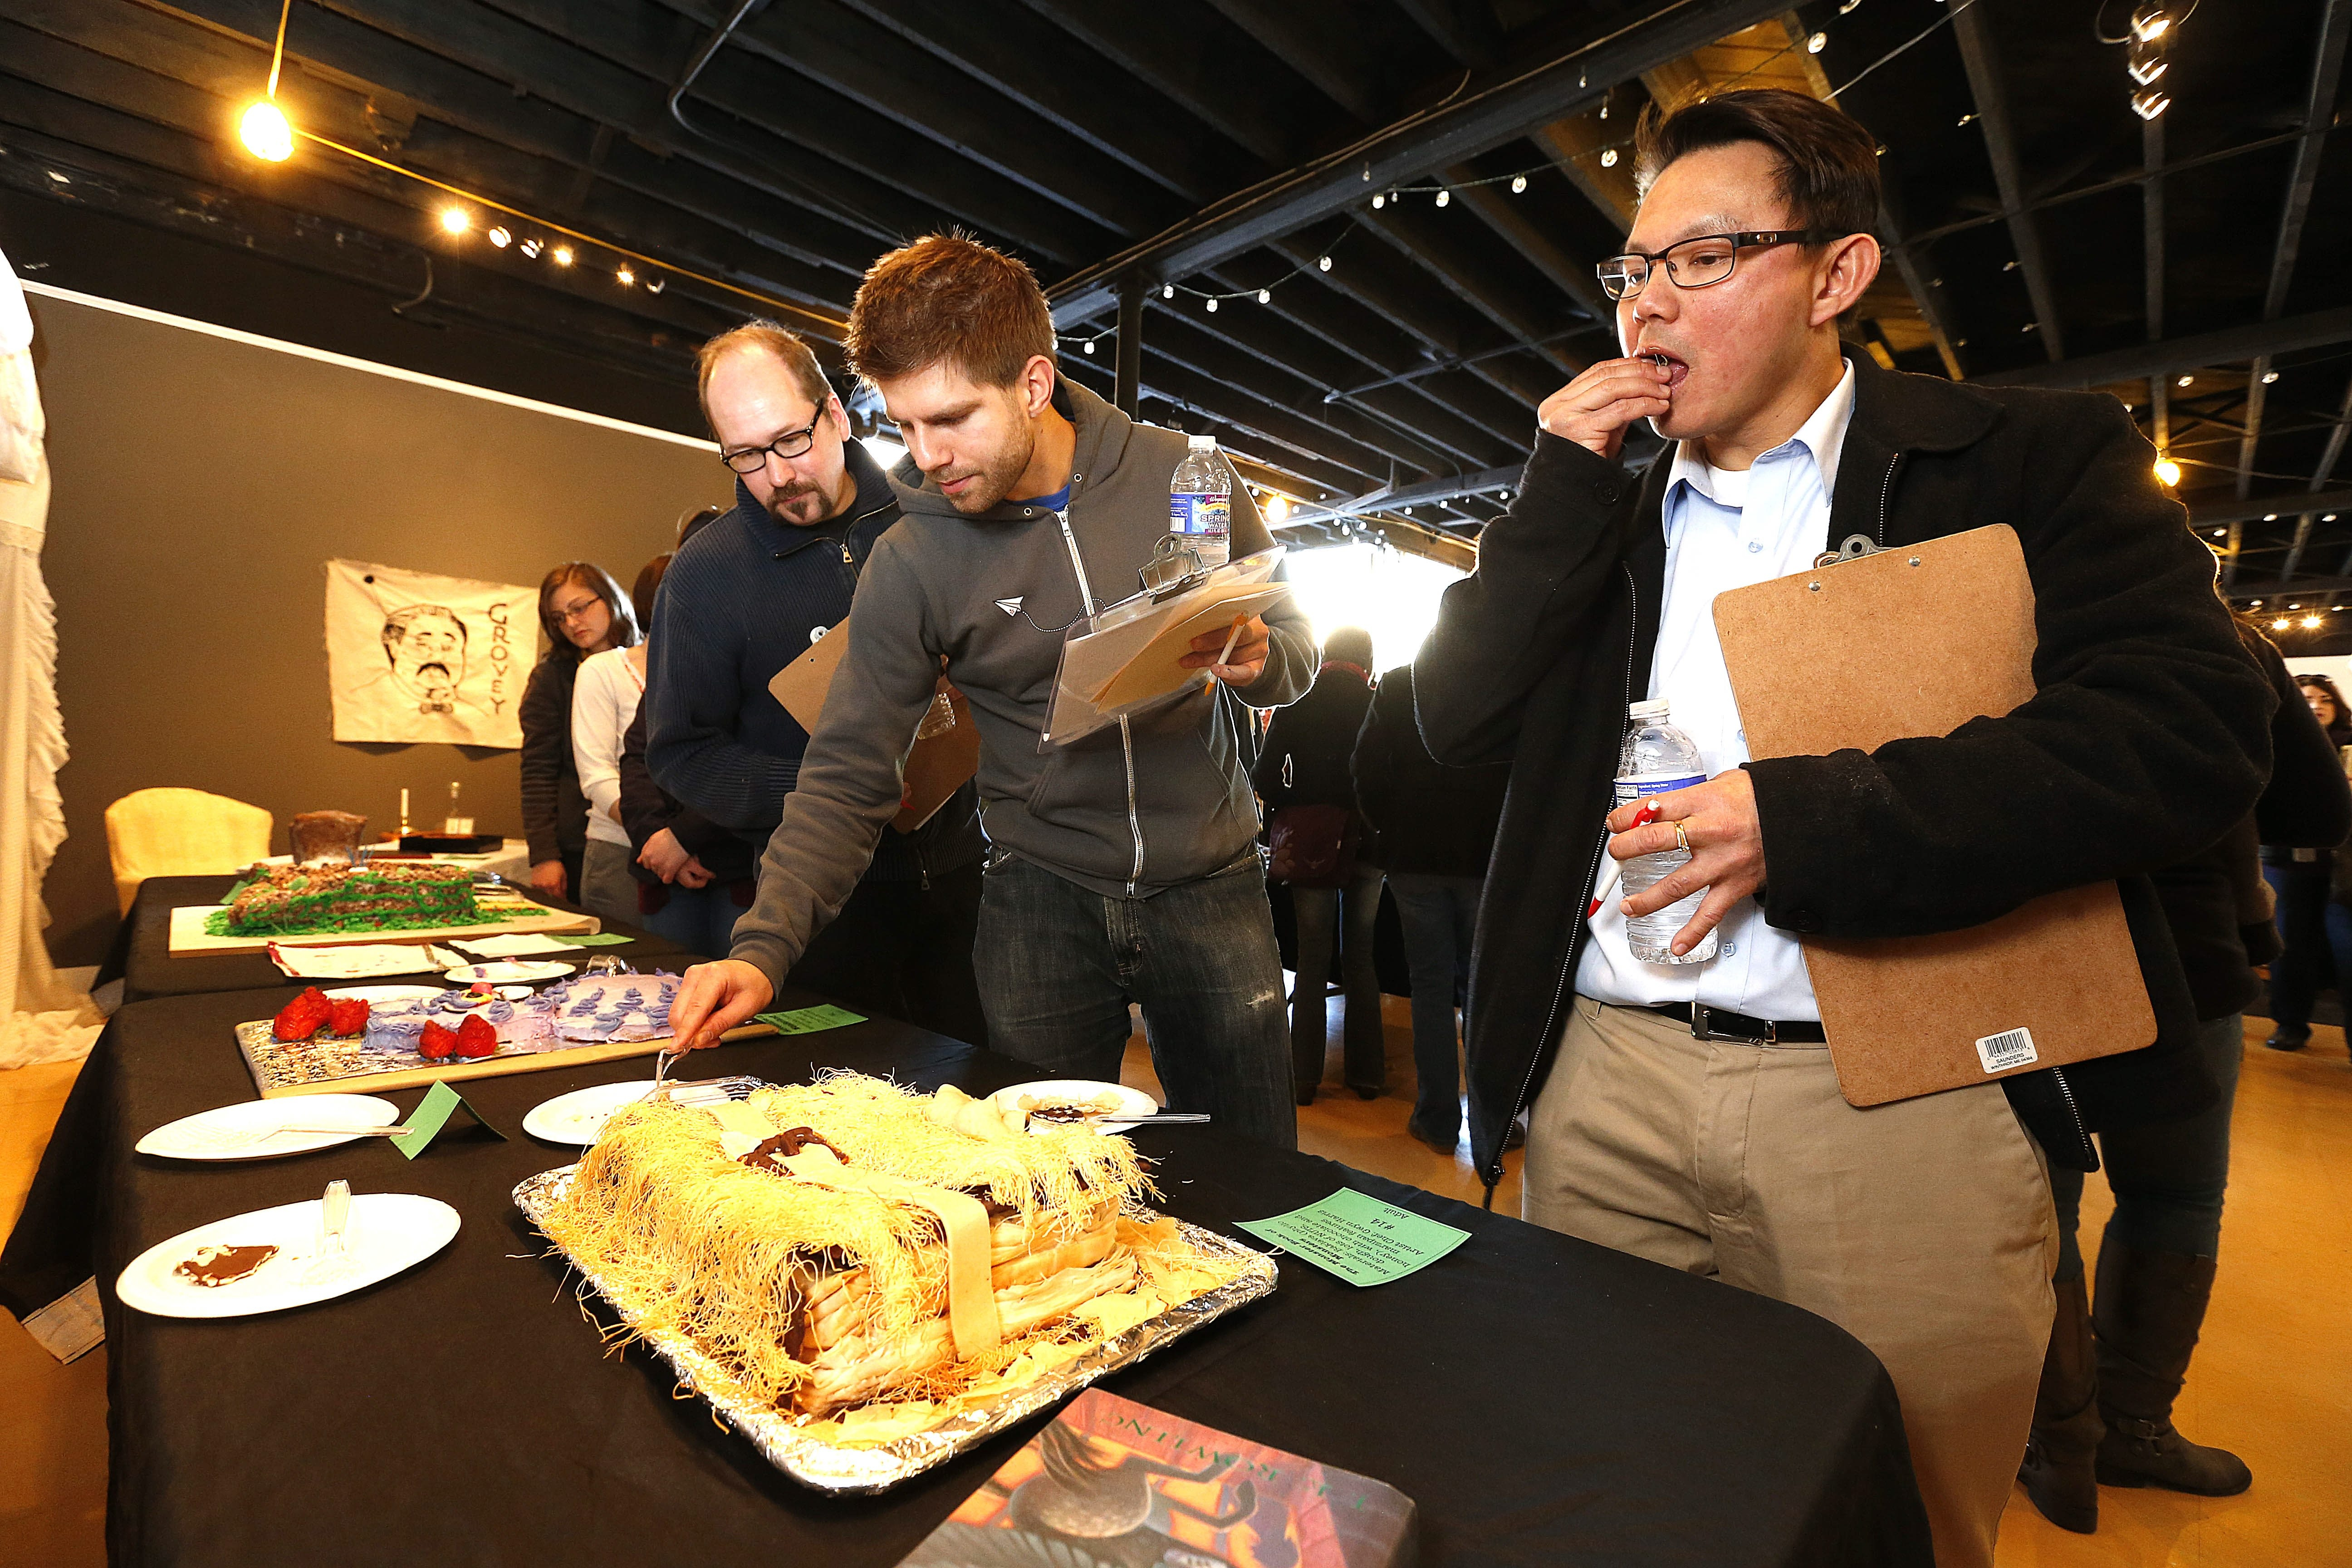 From left, Richard Kegler, Alex Levine and Kevin Lin, judge the entries at the Edible Books day at Western New York Book Arts Center on Sunday, March 30, 2014.